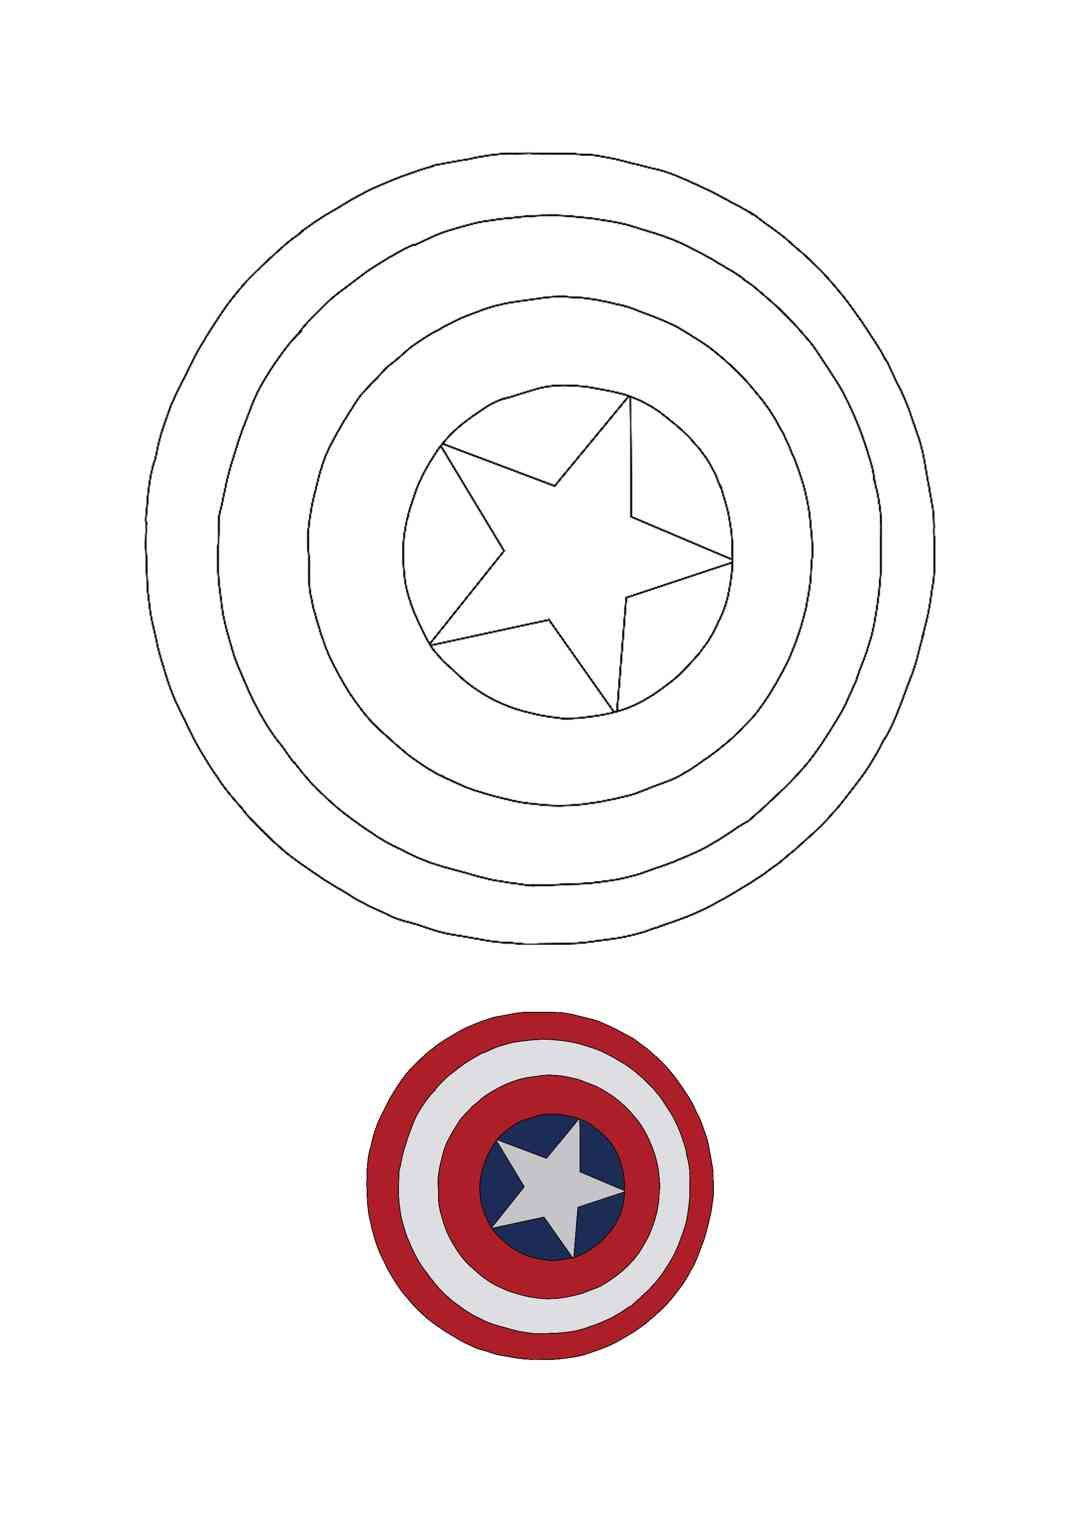 Captain America Shield Coloring Pages In 2020 Captain America Shield Coloring Pages Captain America